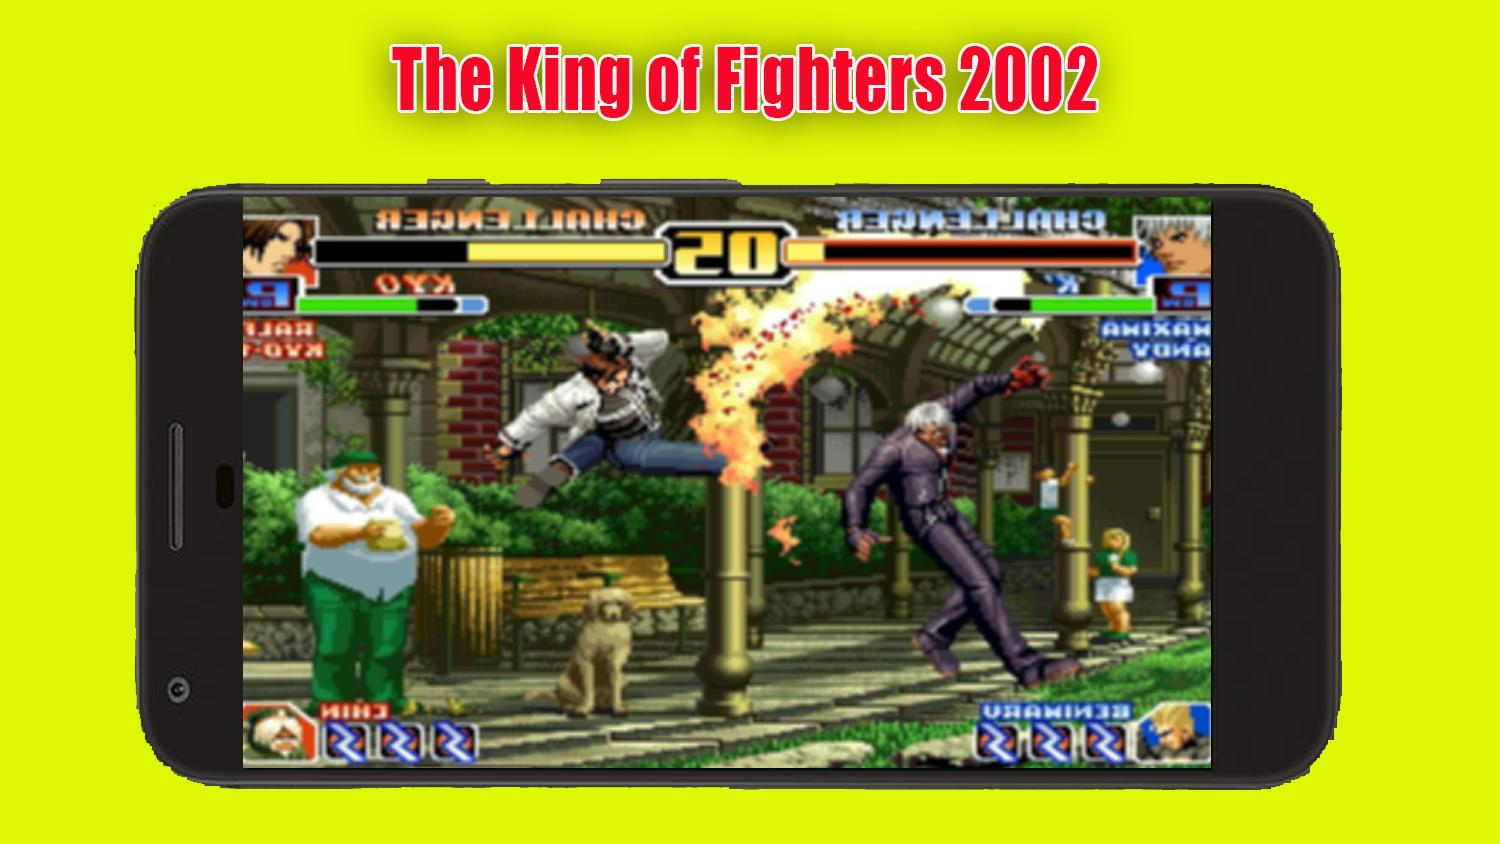 the king of fighters 2002 apk+data download